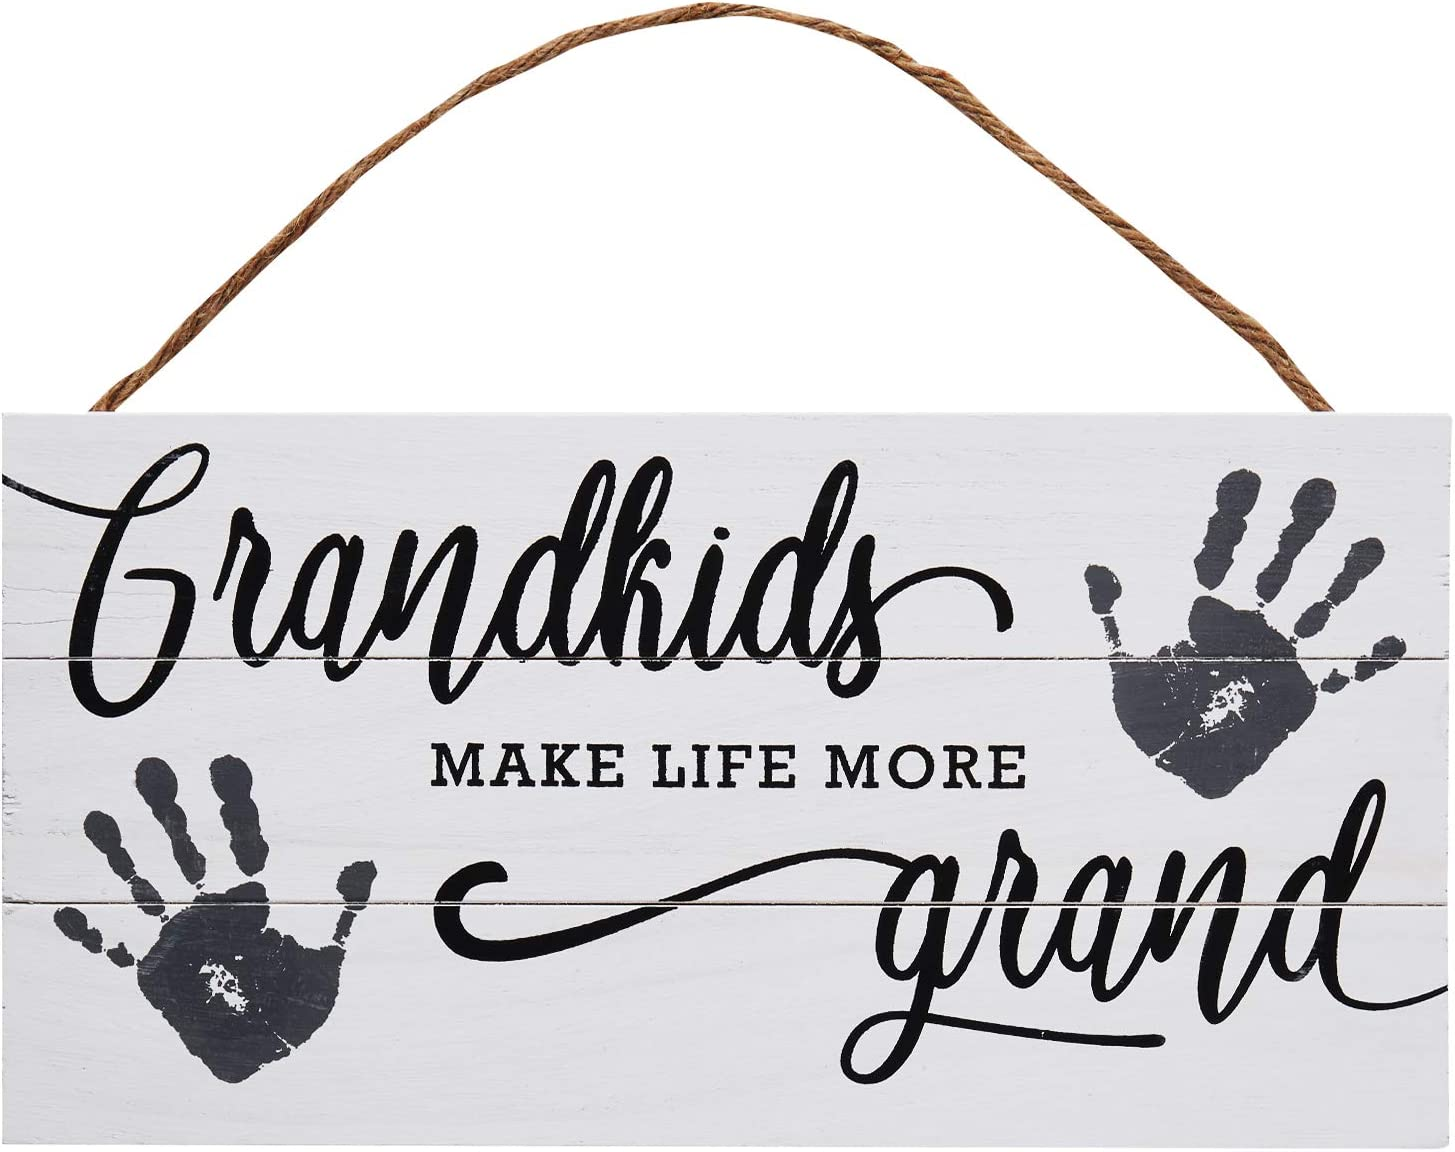 Grandkids Wood Plank Hanging Sign for Home Decor (13.75 x 6.9 Inches)